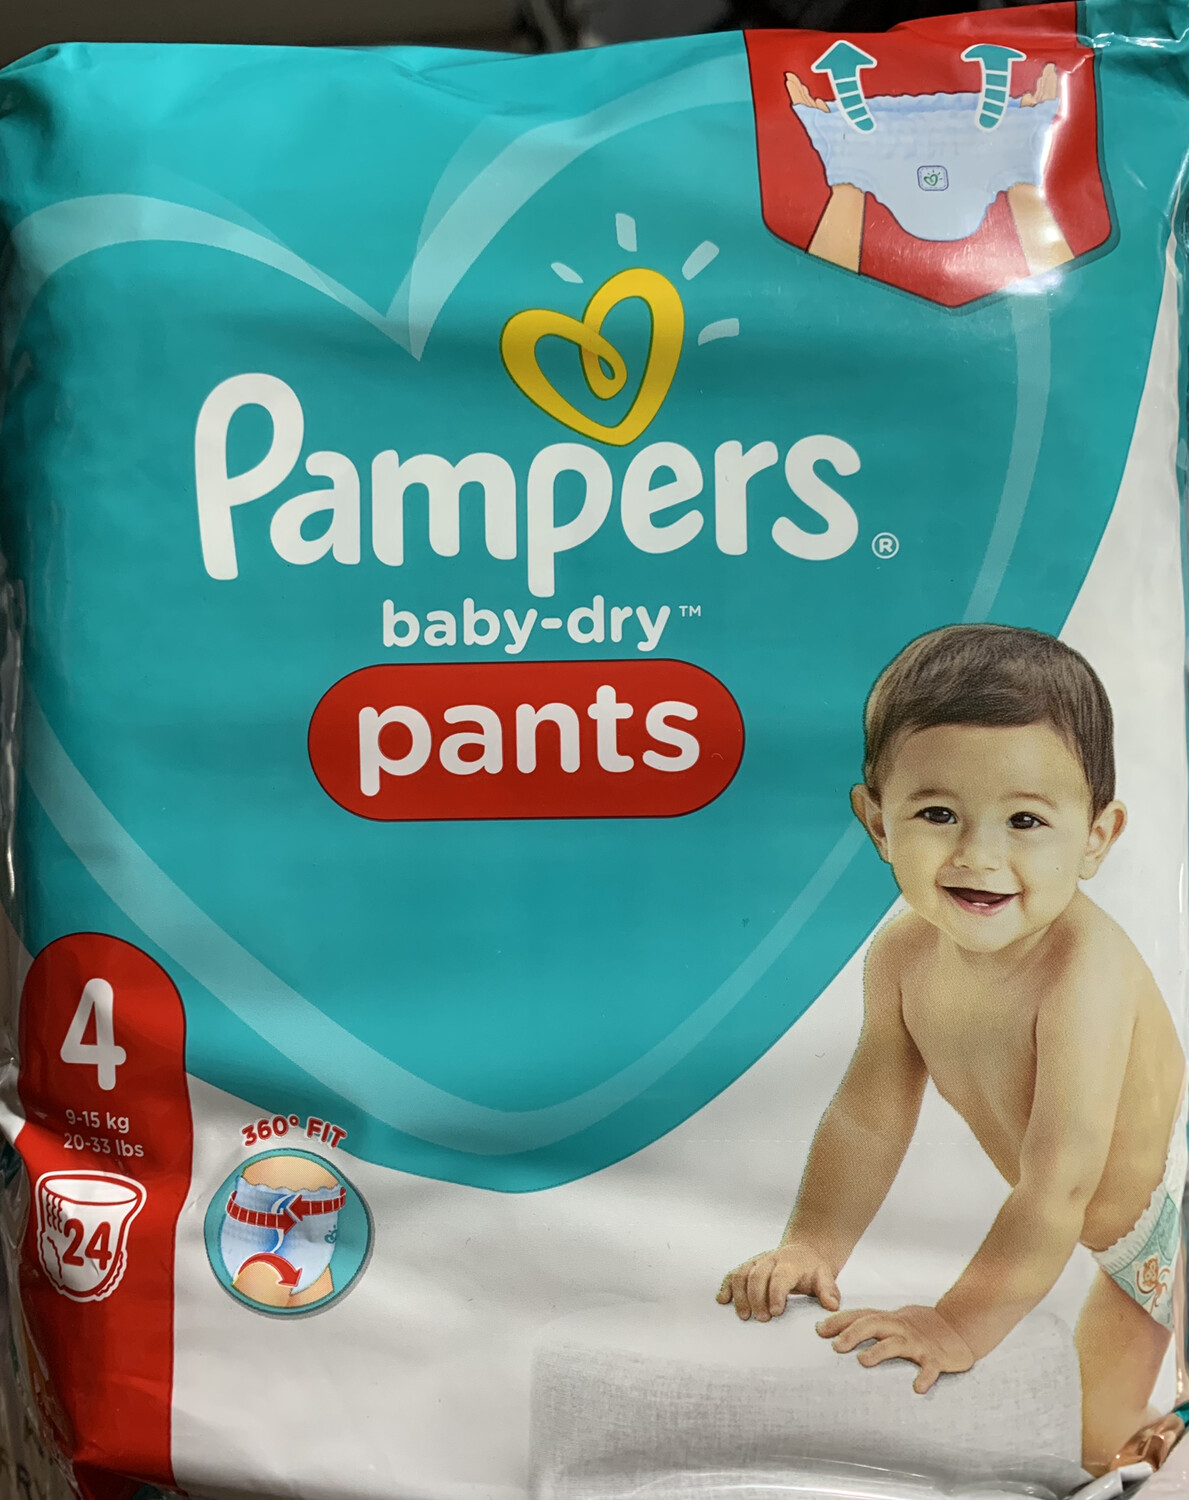 PAMPERS BABY-DRY PANTS 4 24ST